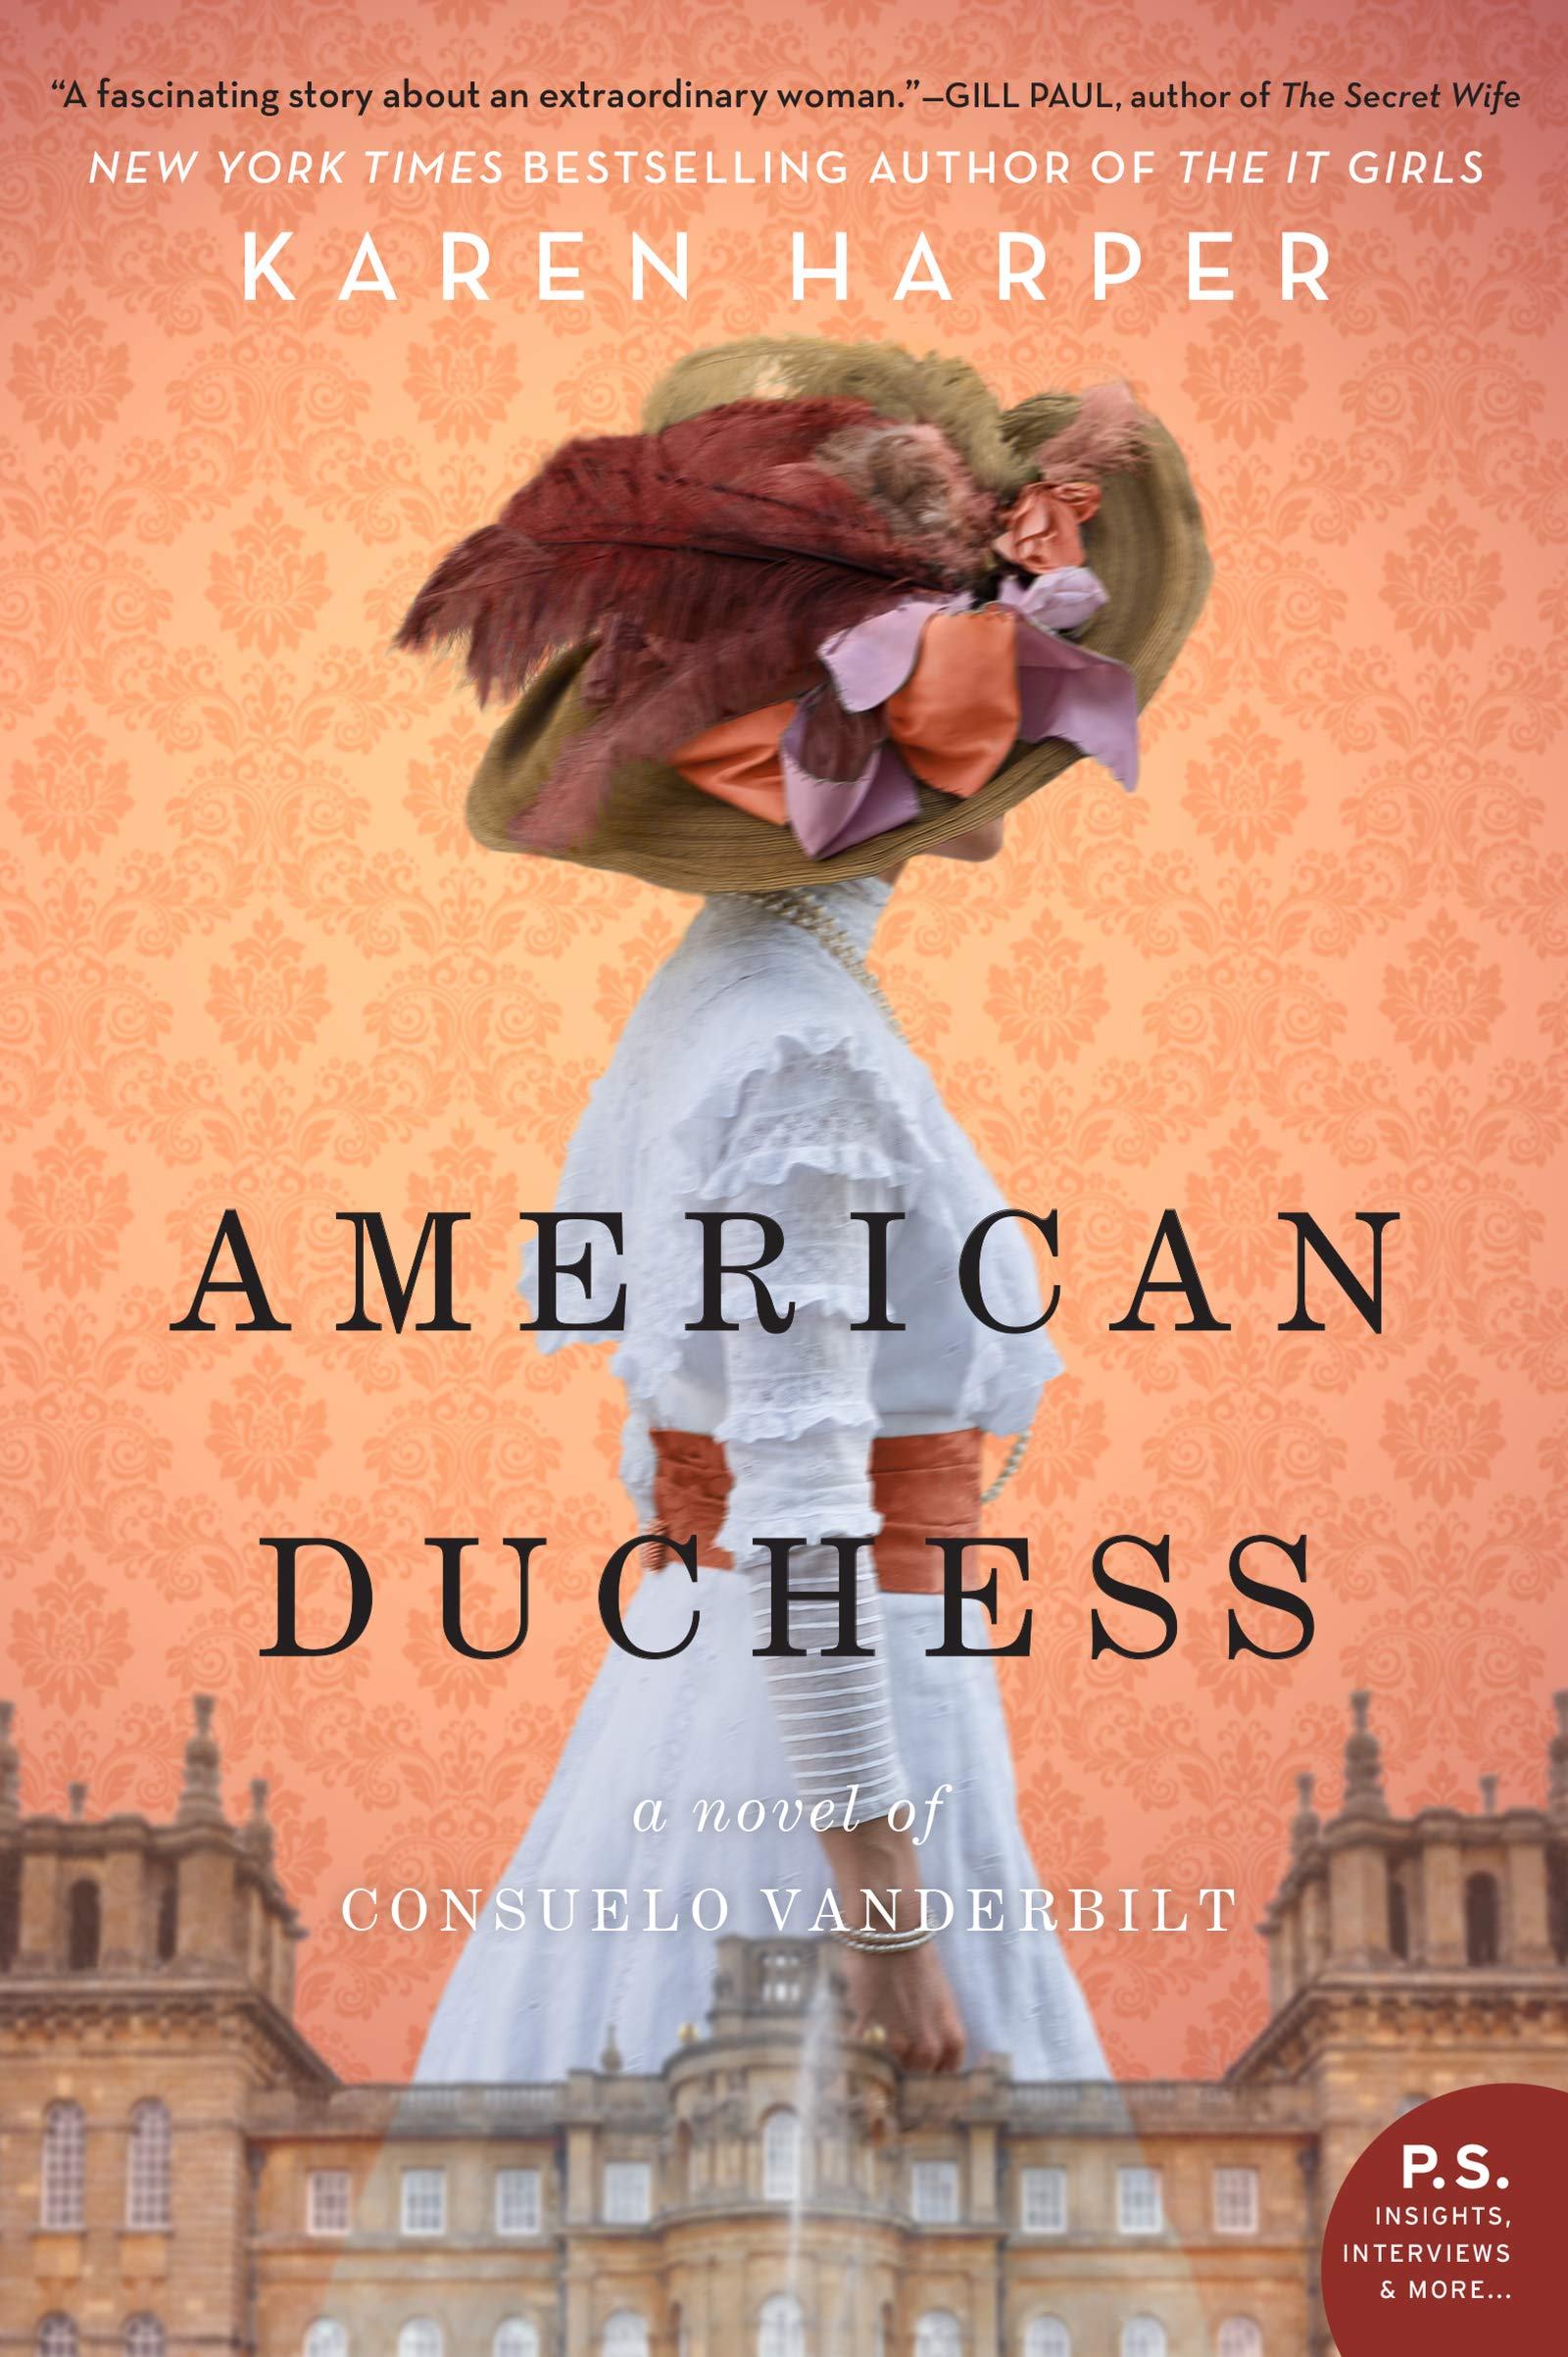 Read the newest historical novel by Karen Harper, American Duchess, about the fascinating life of Consuelo Vanderbilt (will be released Feb. 26th).